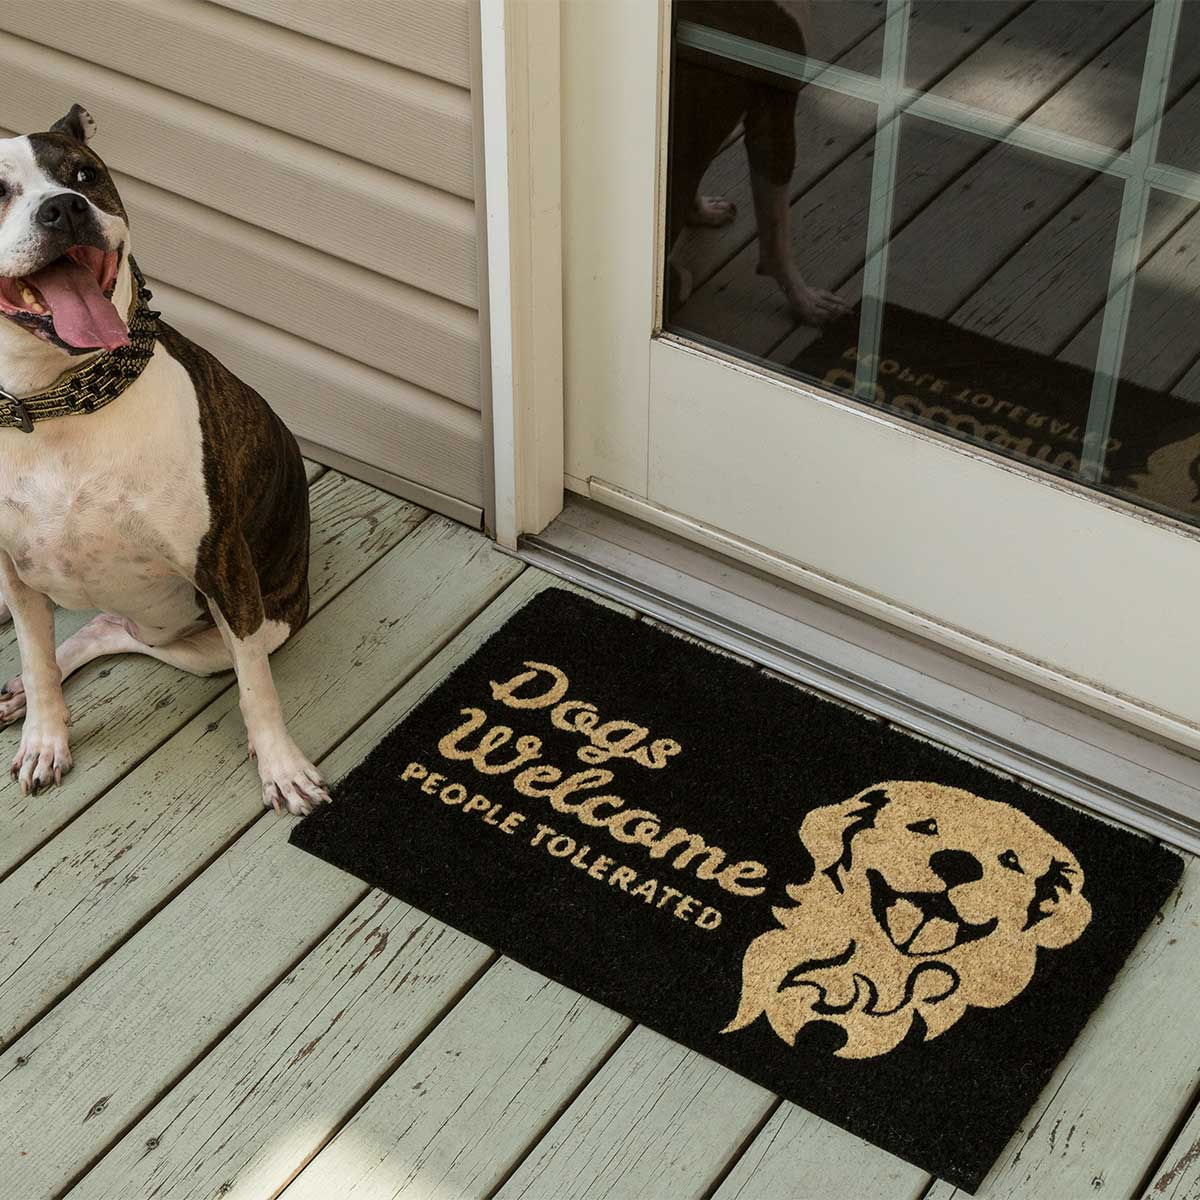 People Tolerated non Slip Coir Doormat